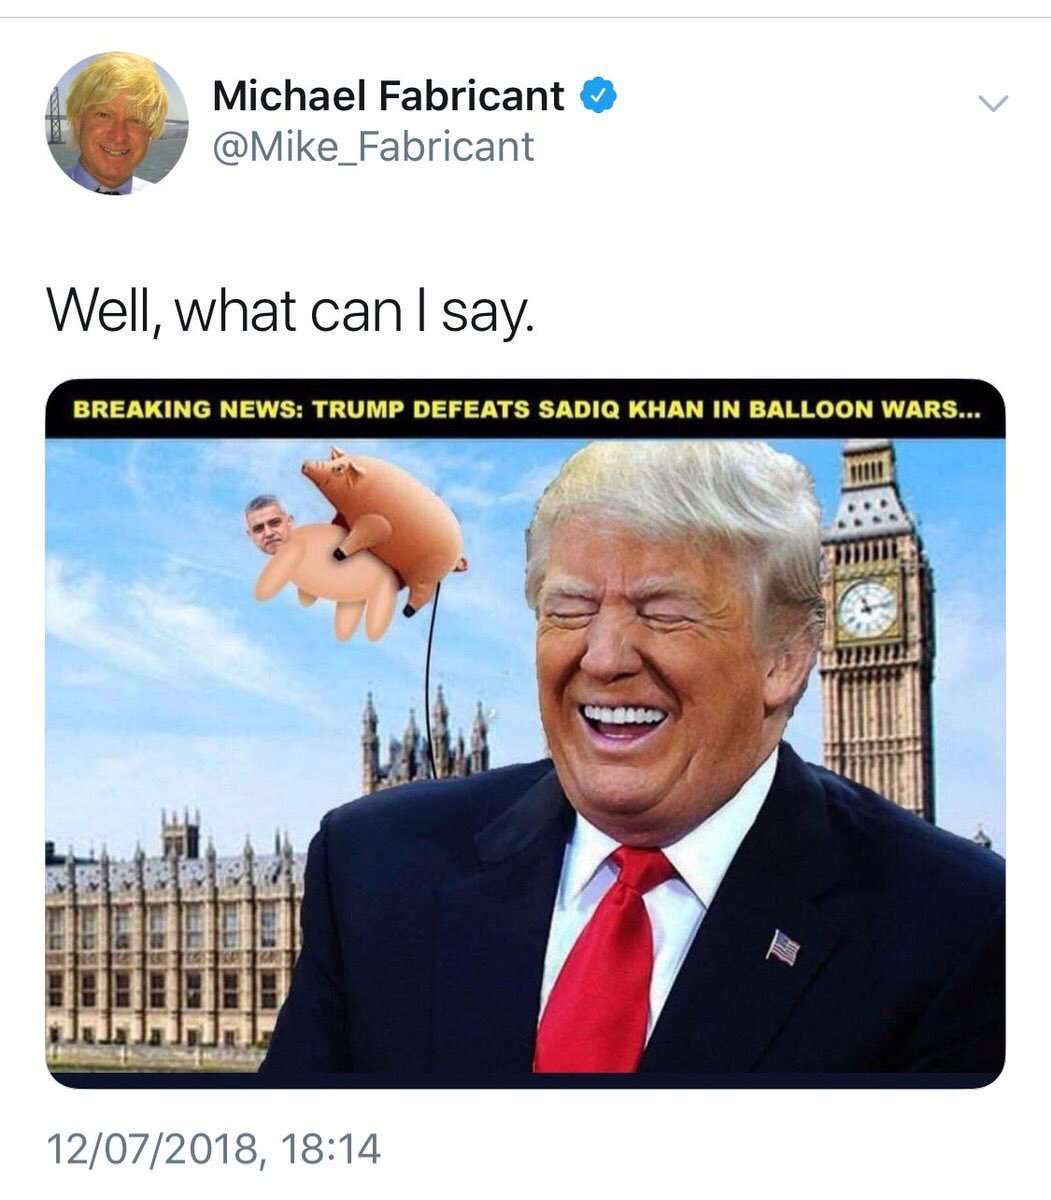 Gross tweet from Michael Fabricant METRO GRAB taken from: https://twitter.com/hopenothate/status/1017479463666405376 Credit: Michael Fabricant/Twitter